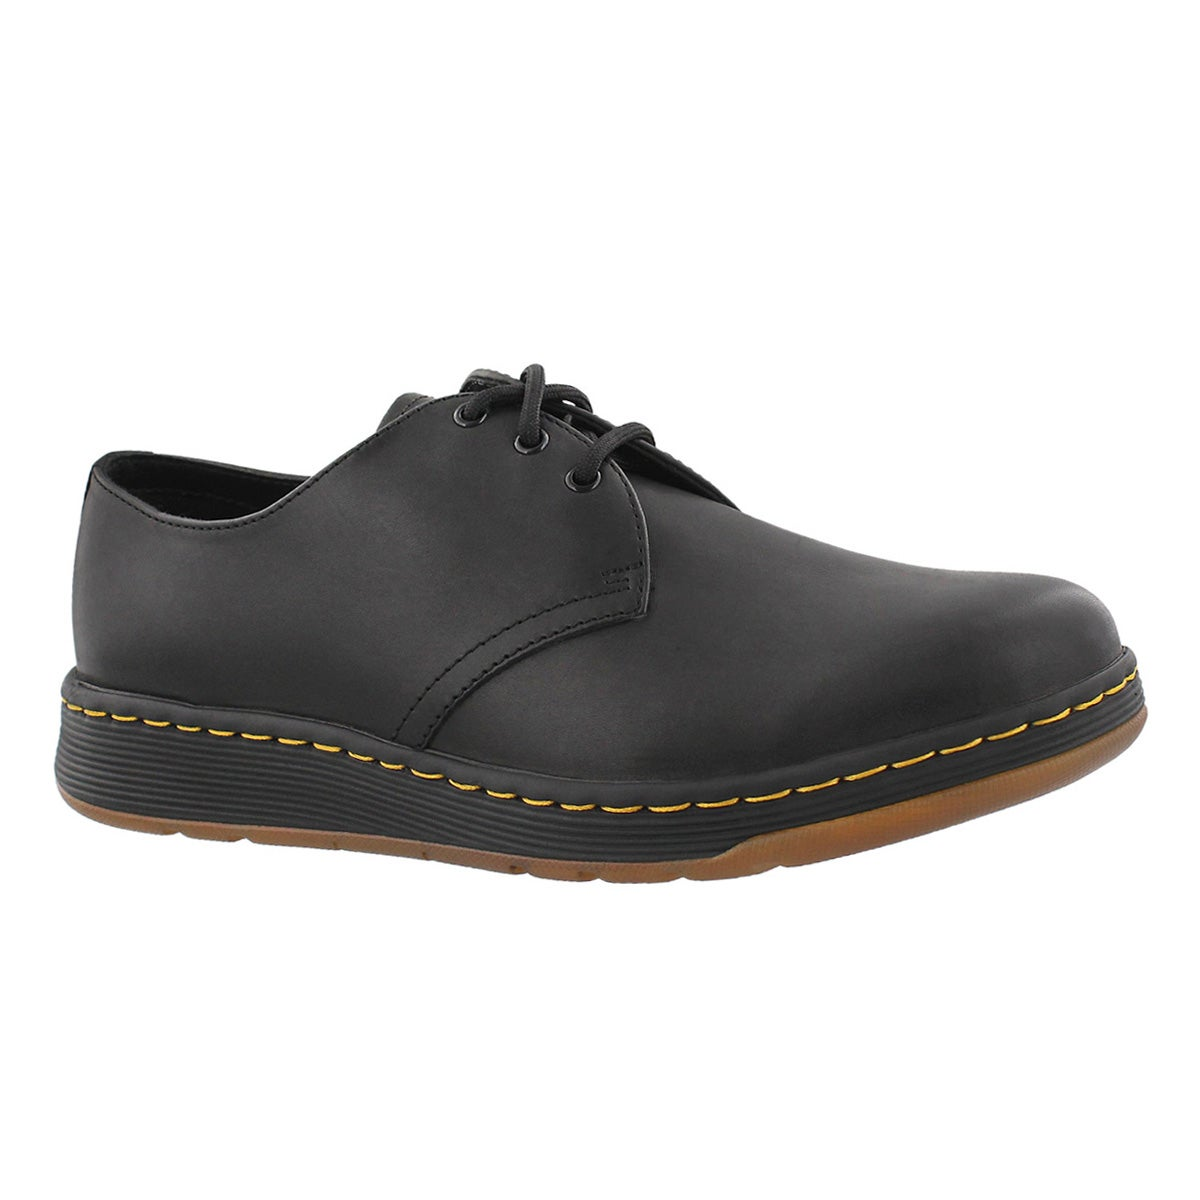 Men's DM Lite CAVENDISH black 3 eye casual oxford